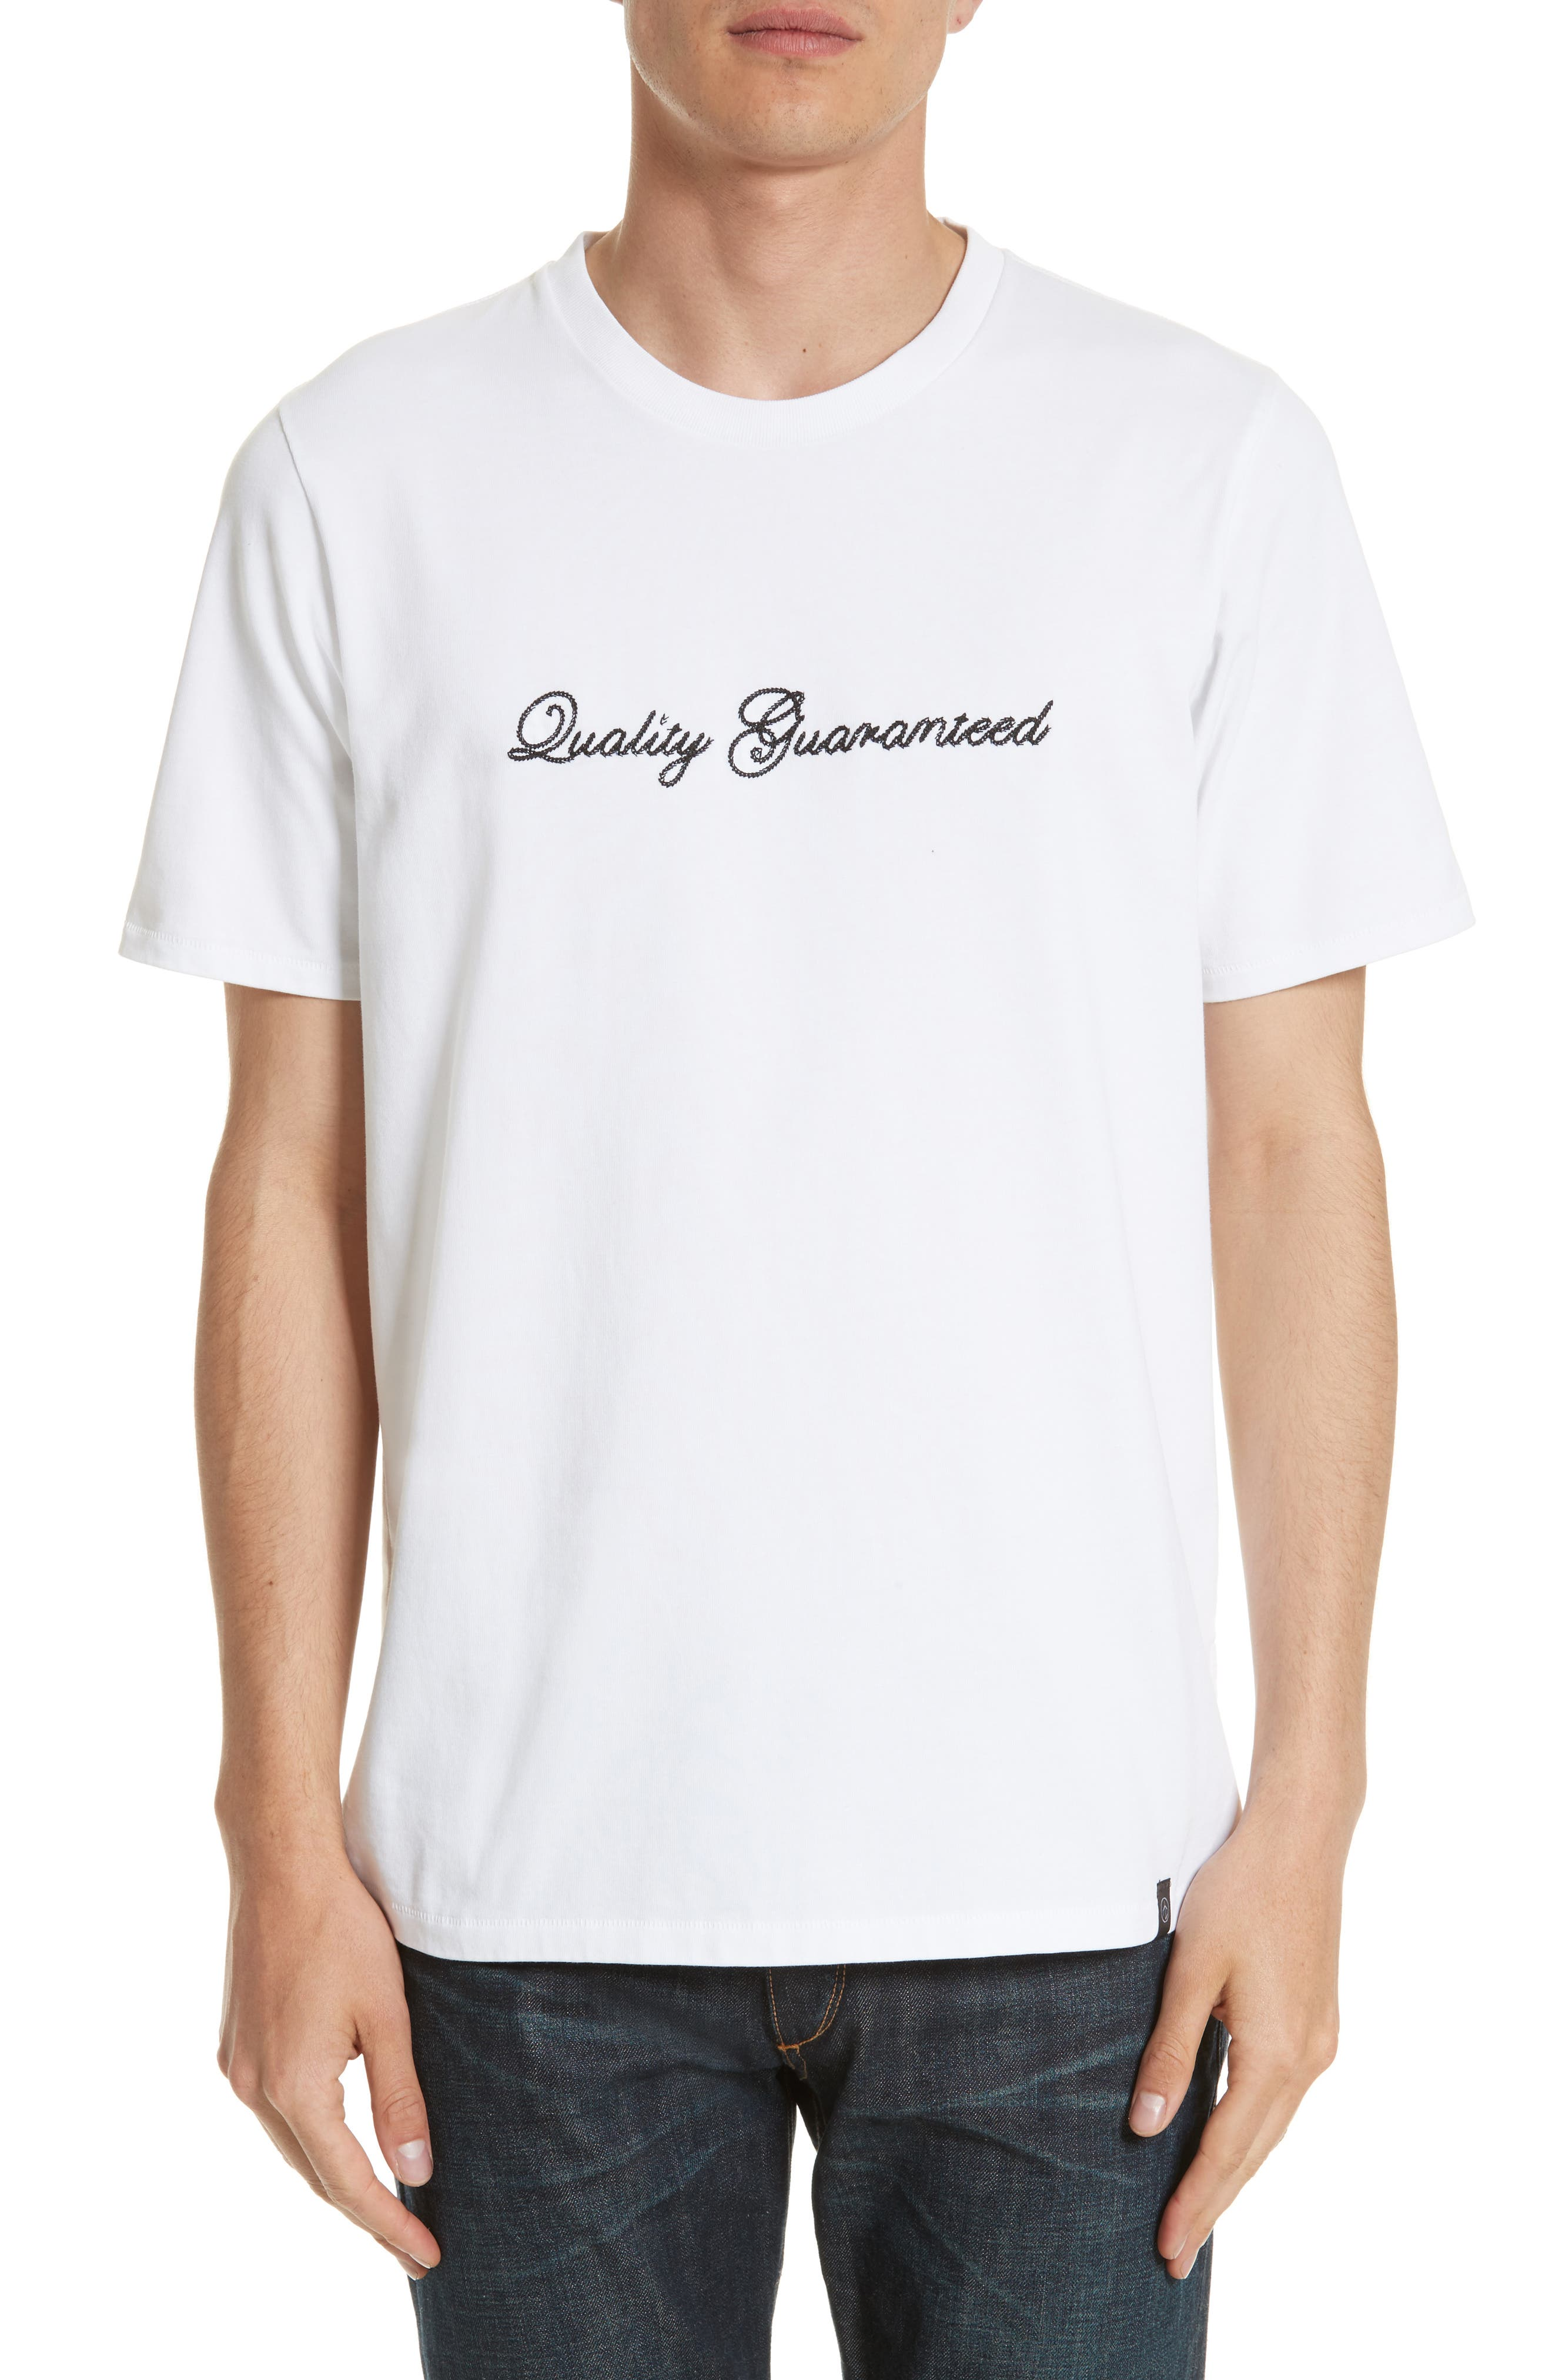 Alternate Image 1 Selected - rag & bone Quality Guaranteed Embroidered T-Shirt